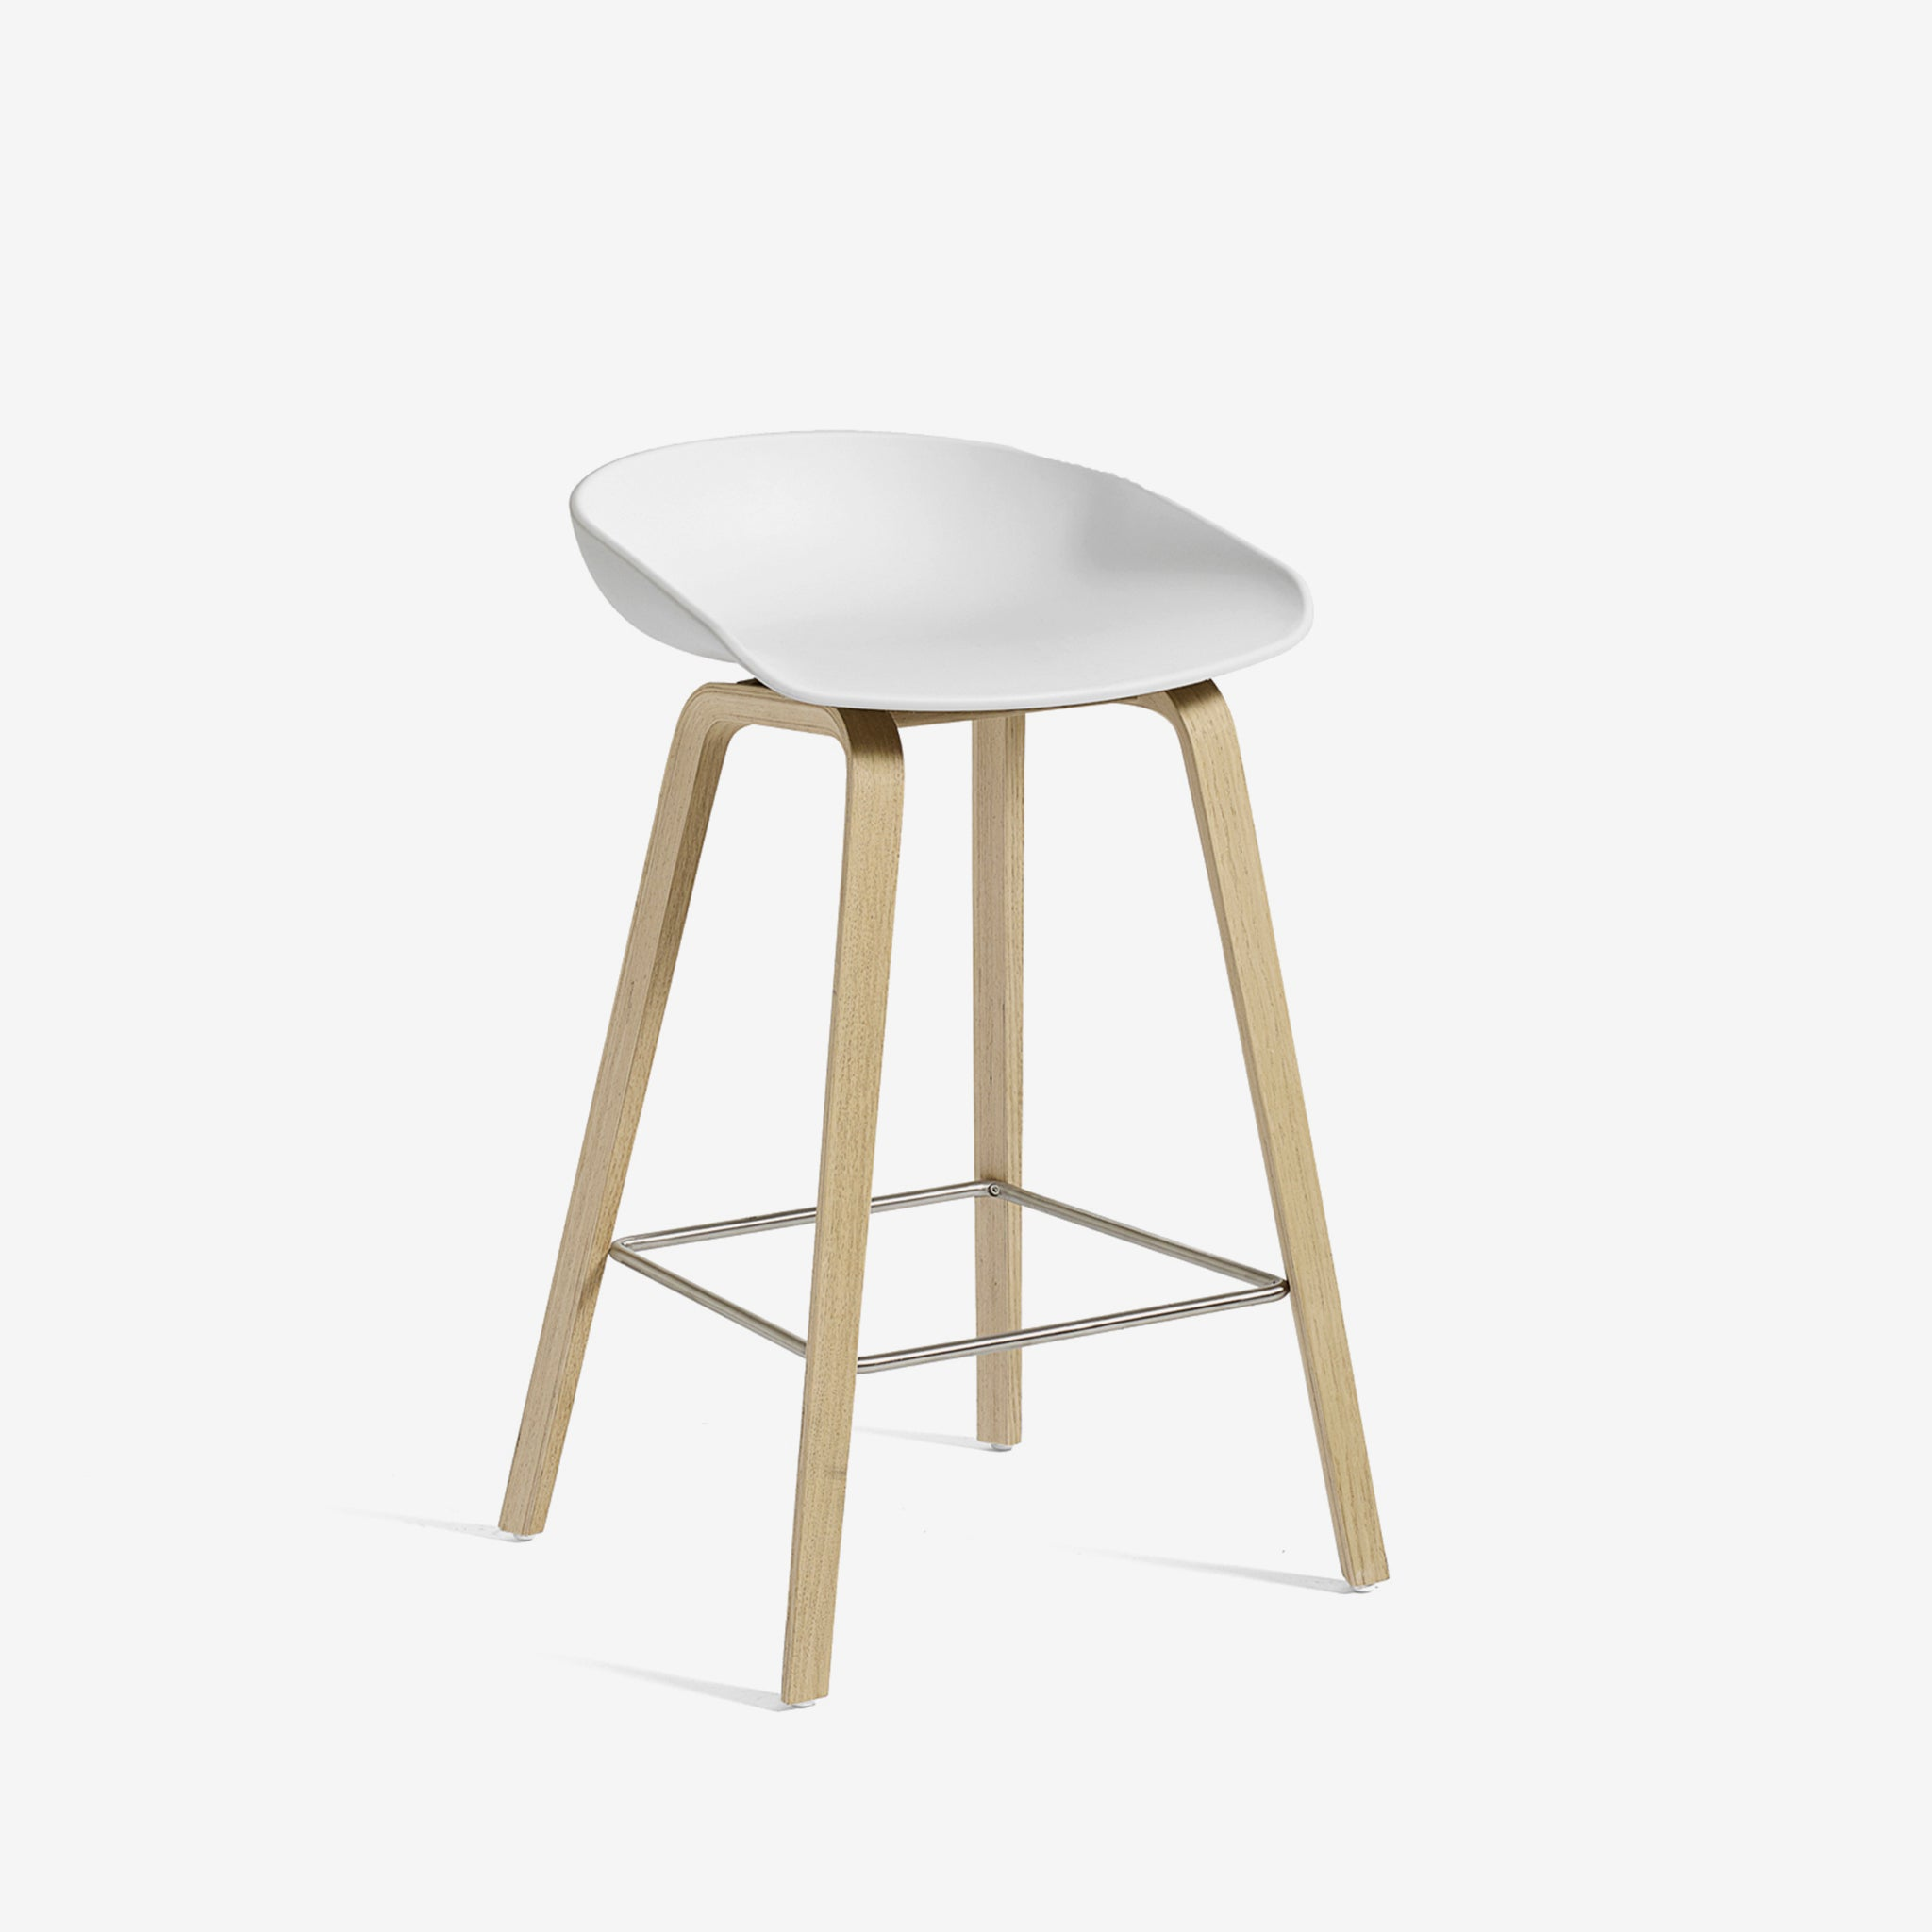 About A Stool AAS32 Low